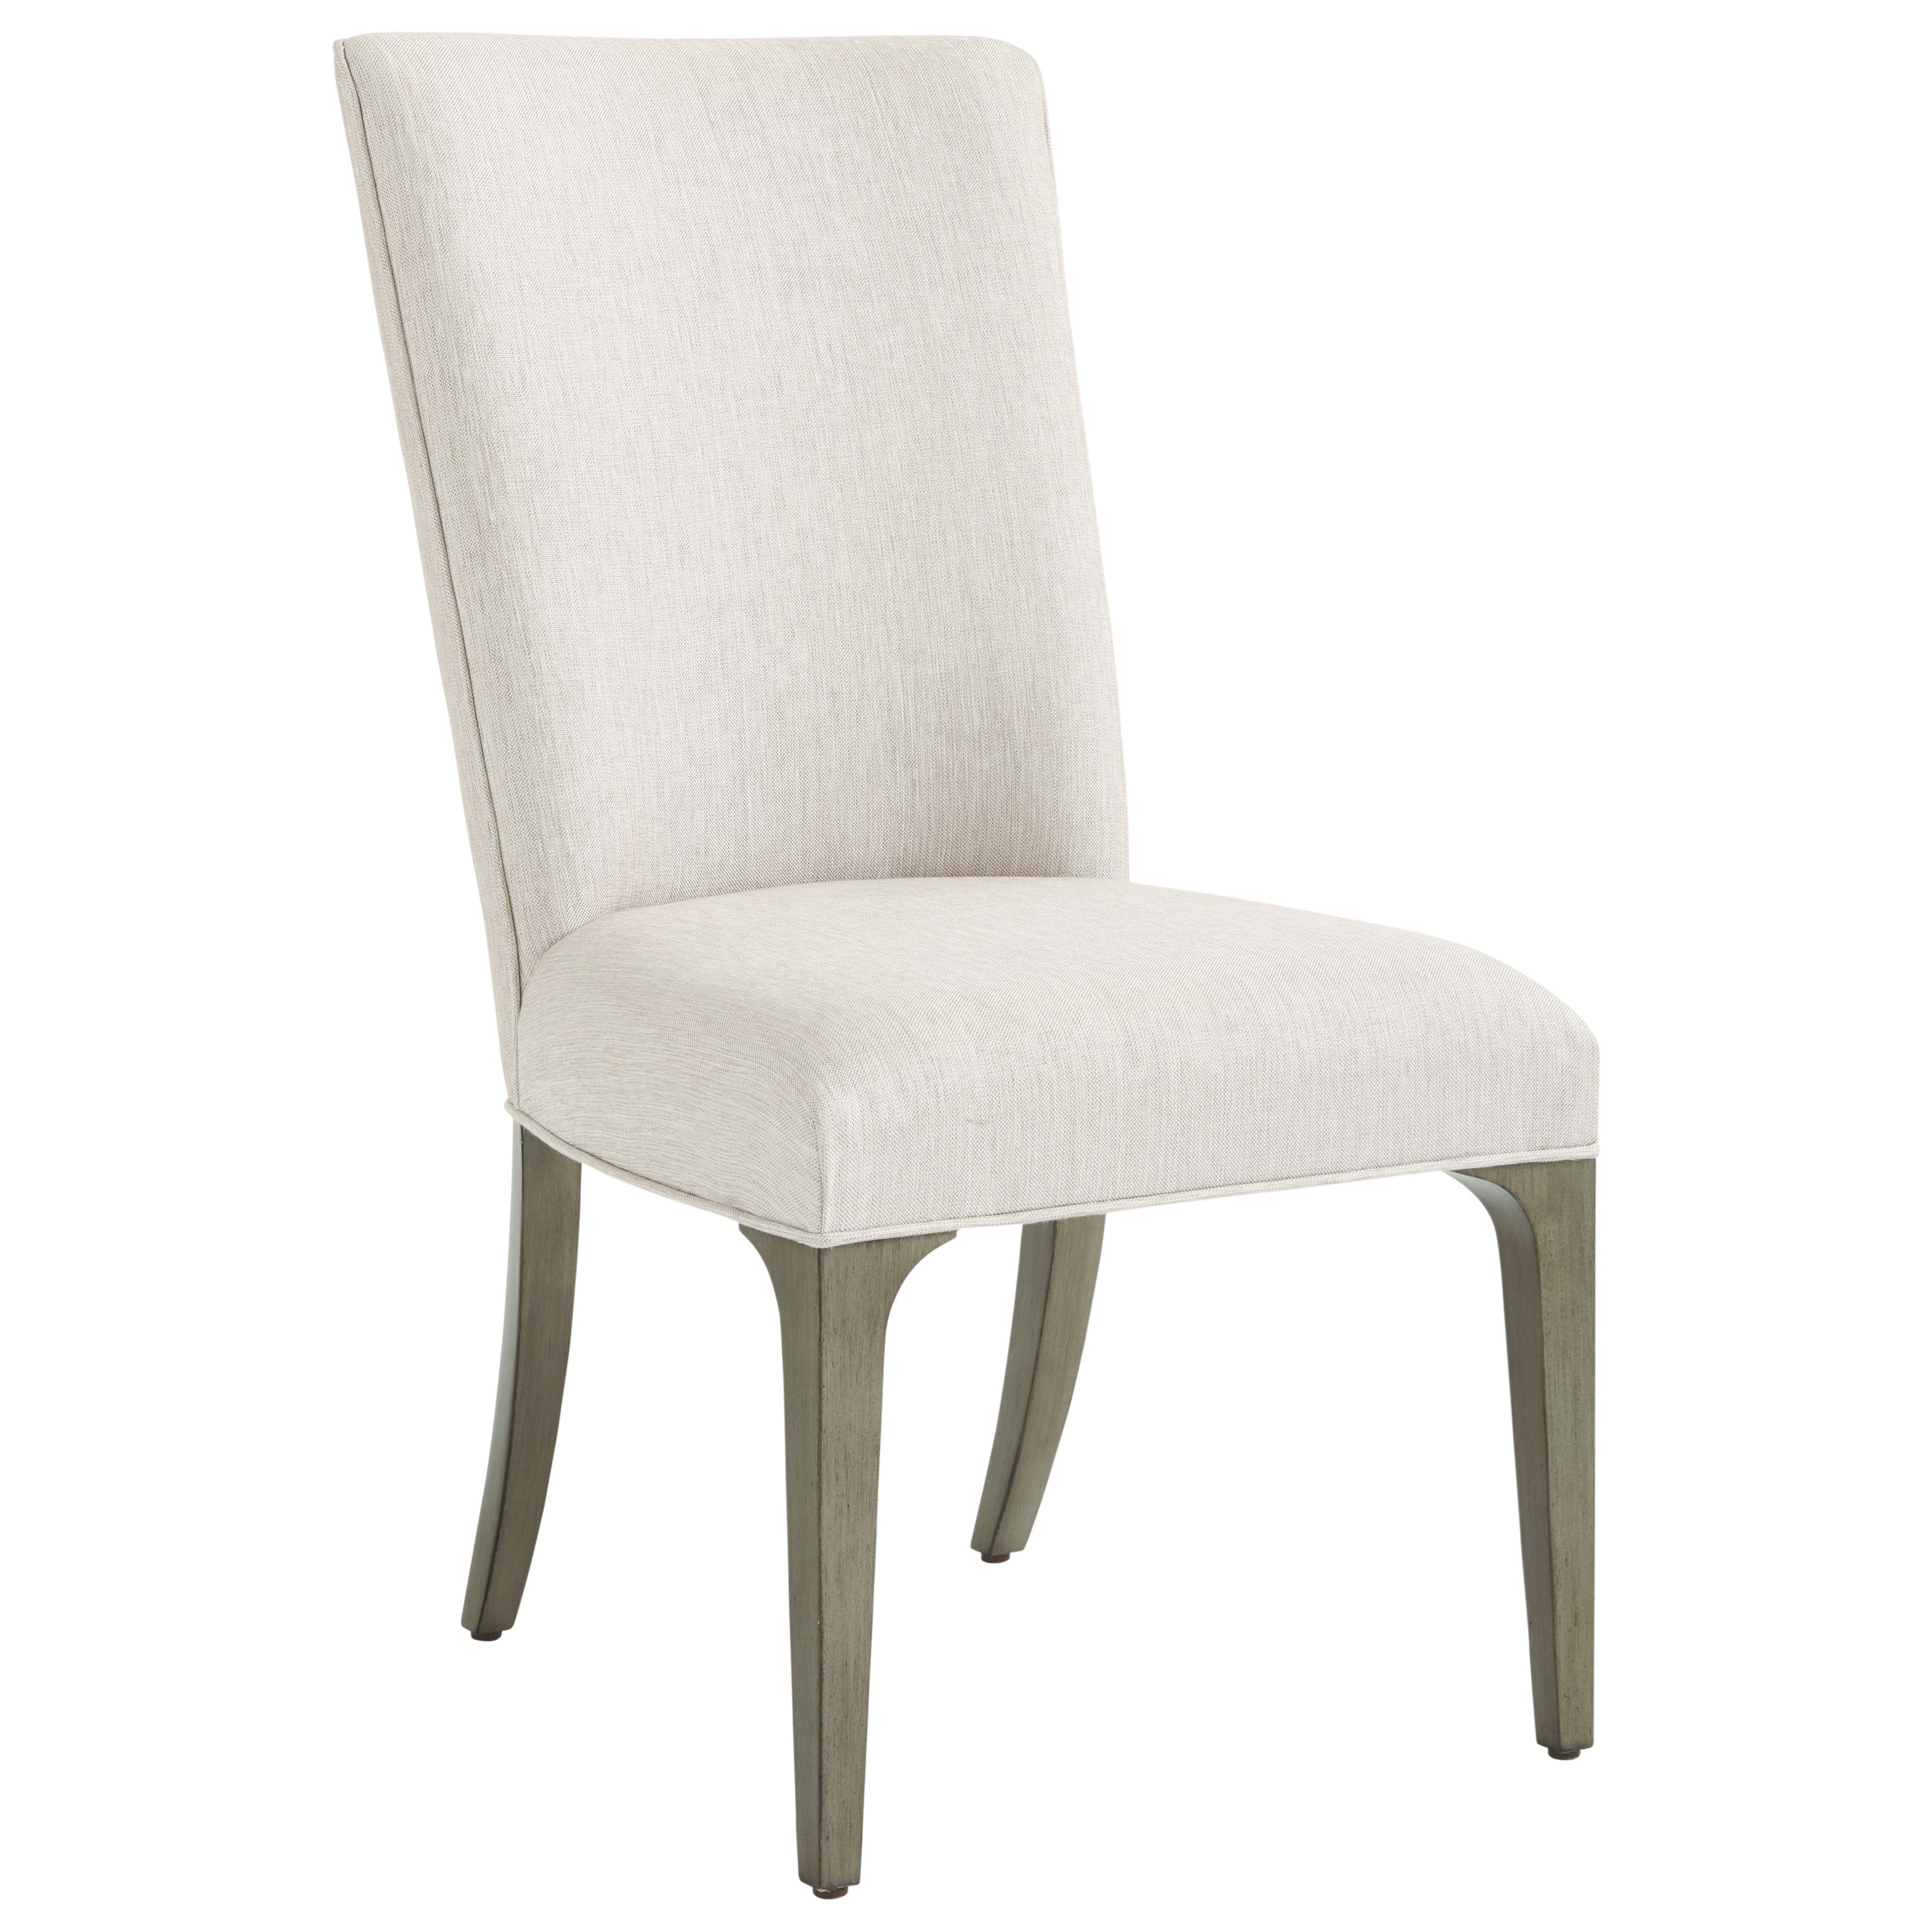 Ariana Bellamy Upholstered Side Chair (married fab) by Lexington at Furniture Fair - North Carolina